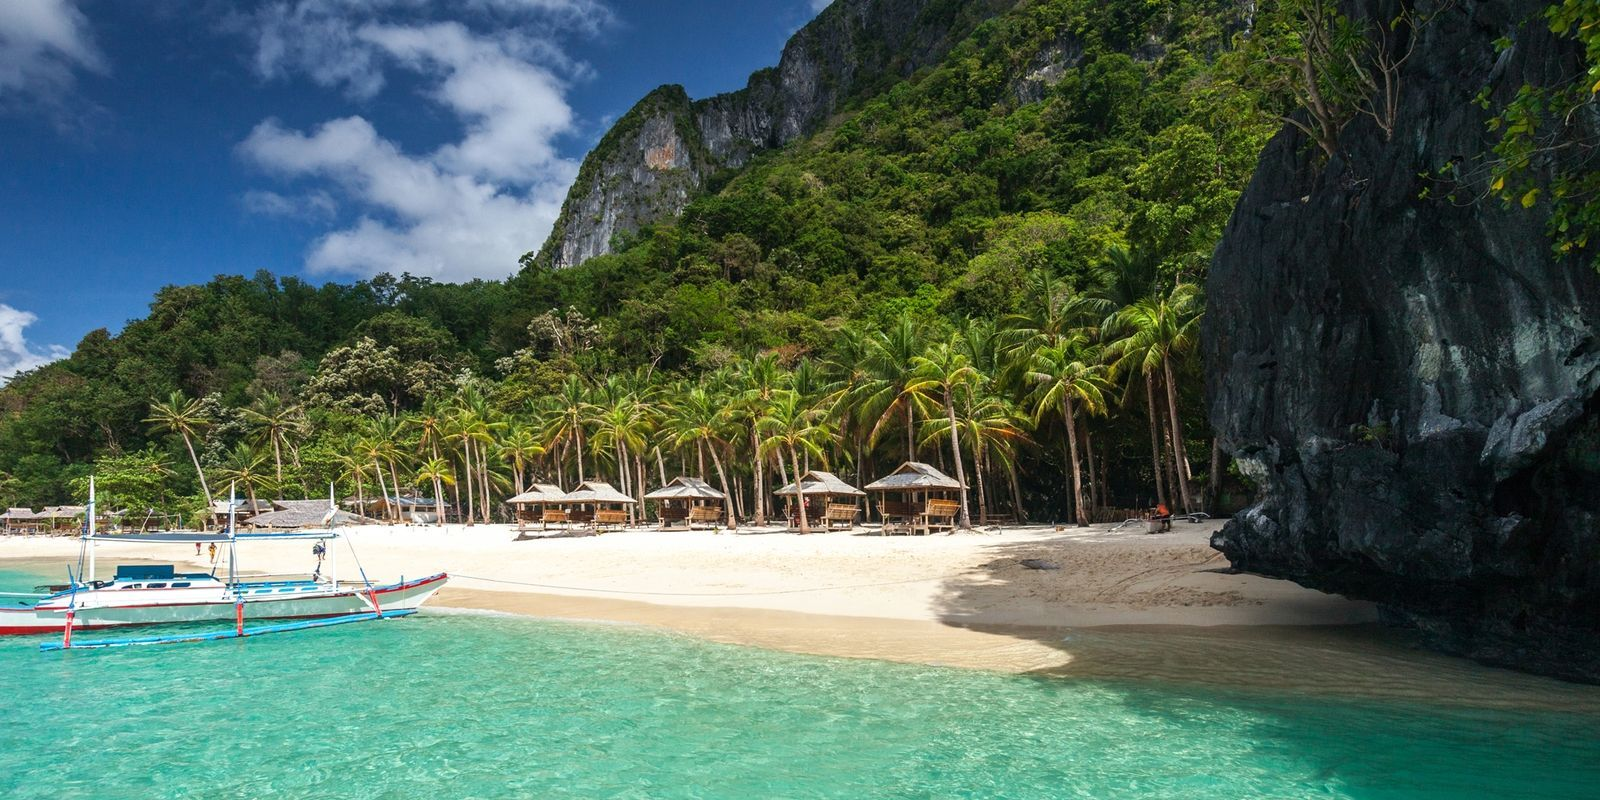 These Are The Best Beaches In The World Beautiful Beaches Most Beautiful Beaches Beaches In The World